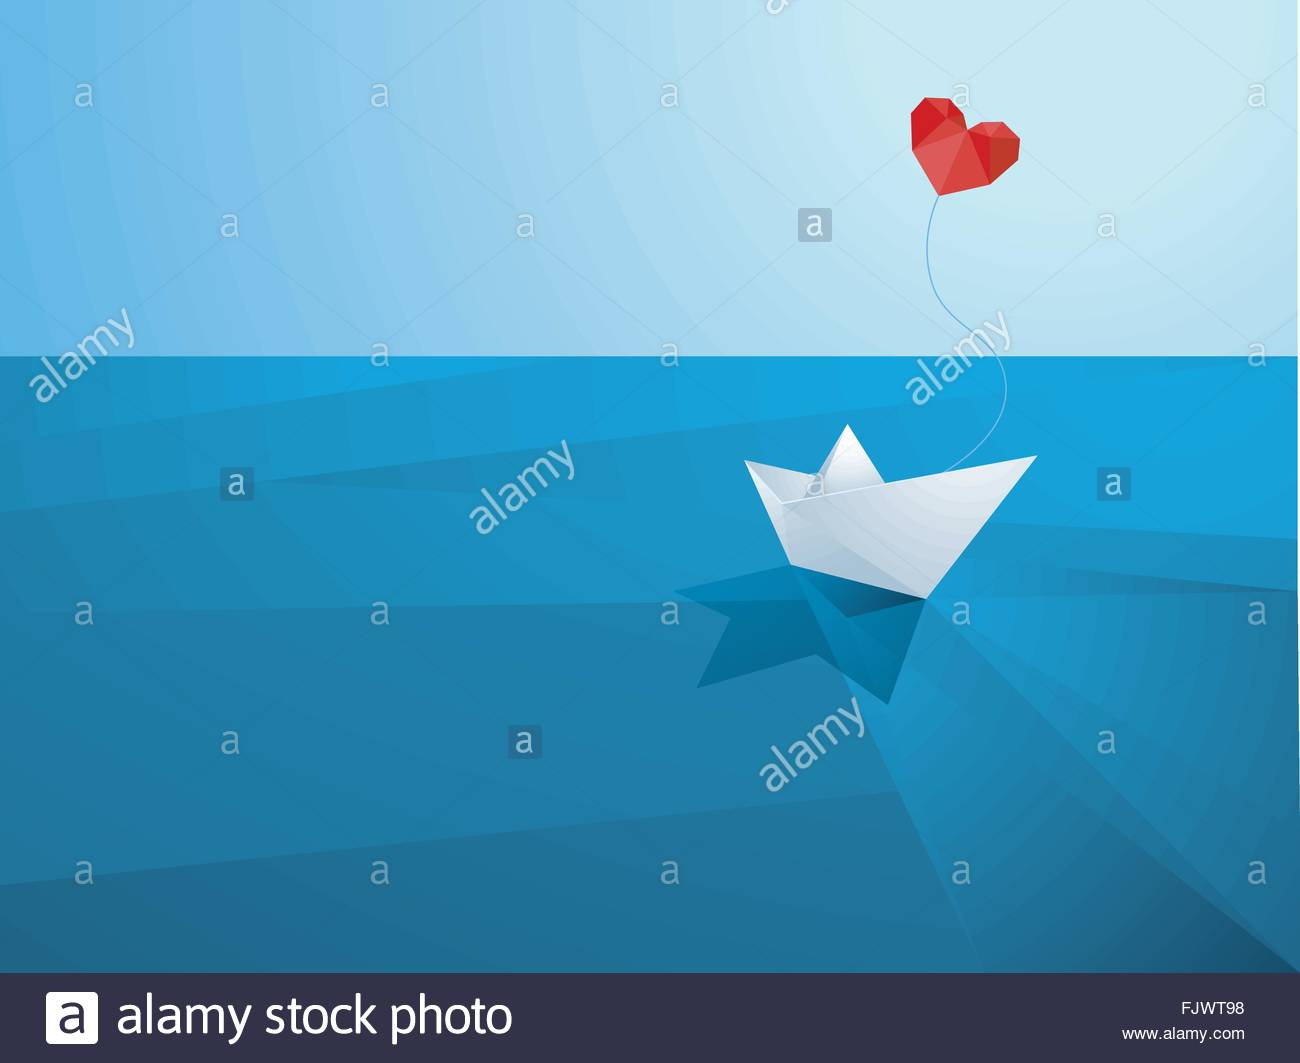 Valentines Day Card Design Template Low Poly Paper Boat With Heart Shaped Balloon Sailing Over The Waves